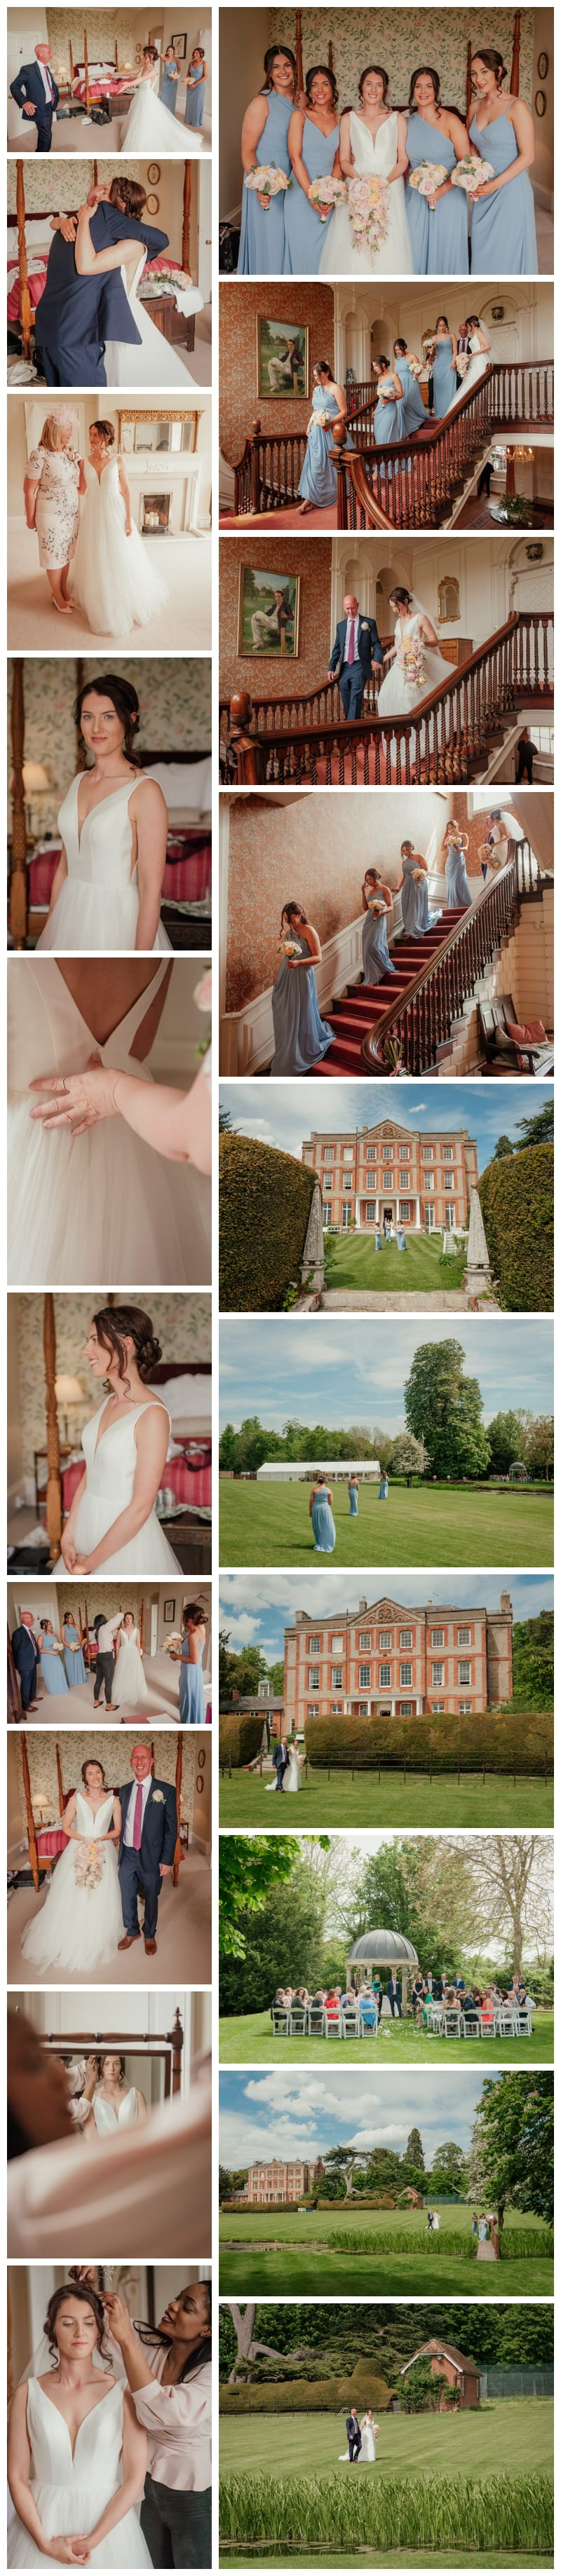 Ardington House Bridal Preparation